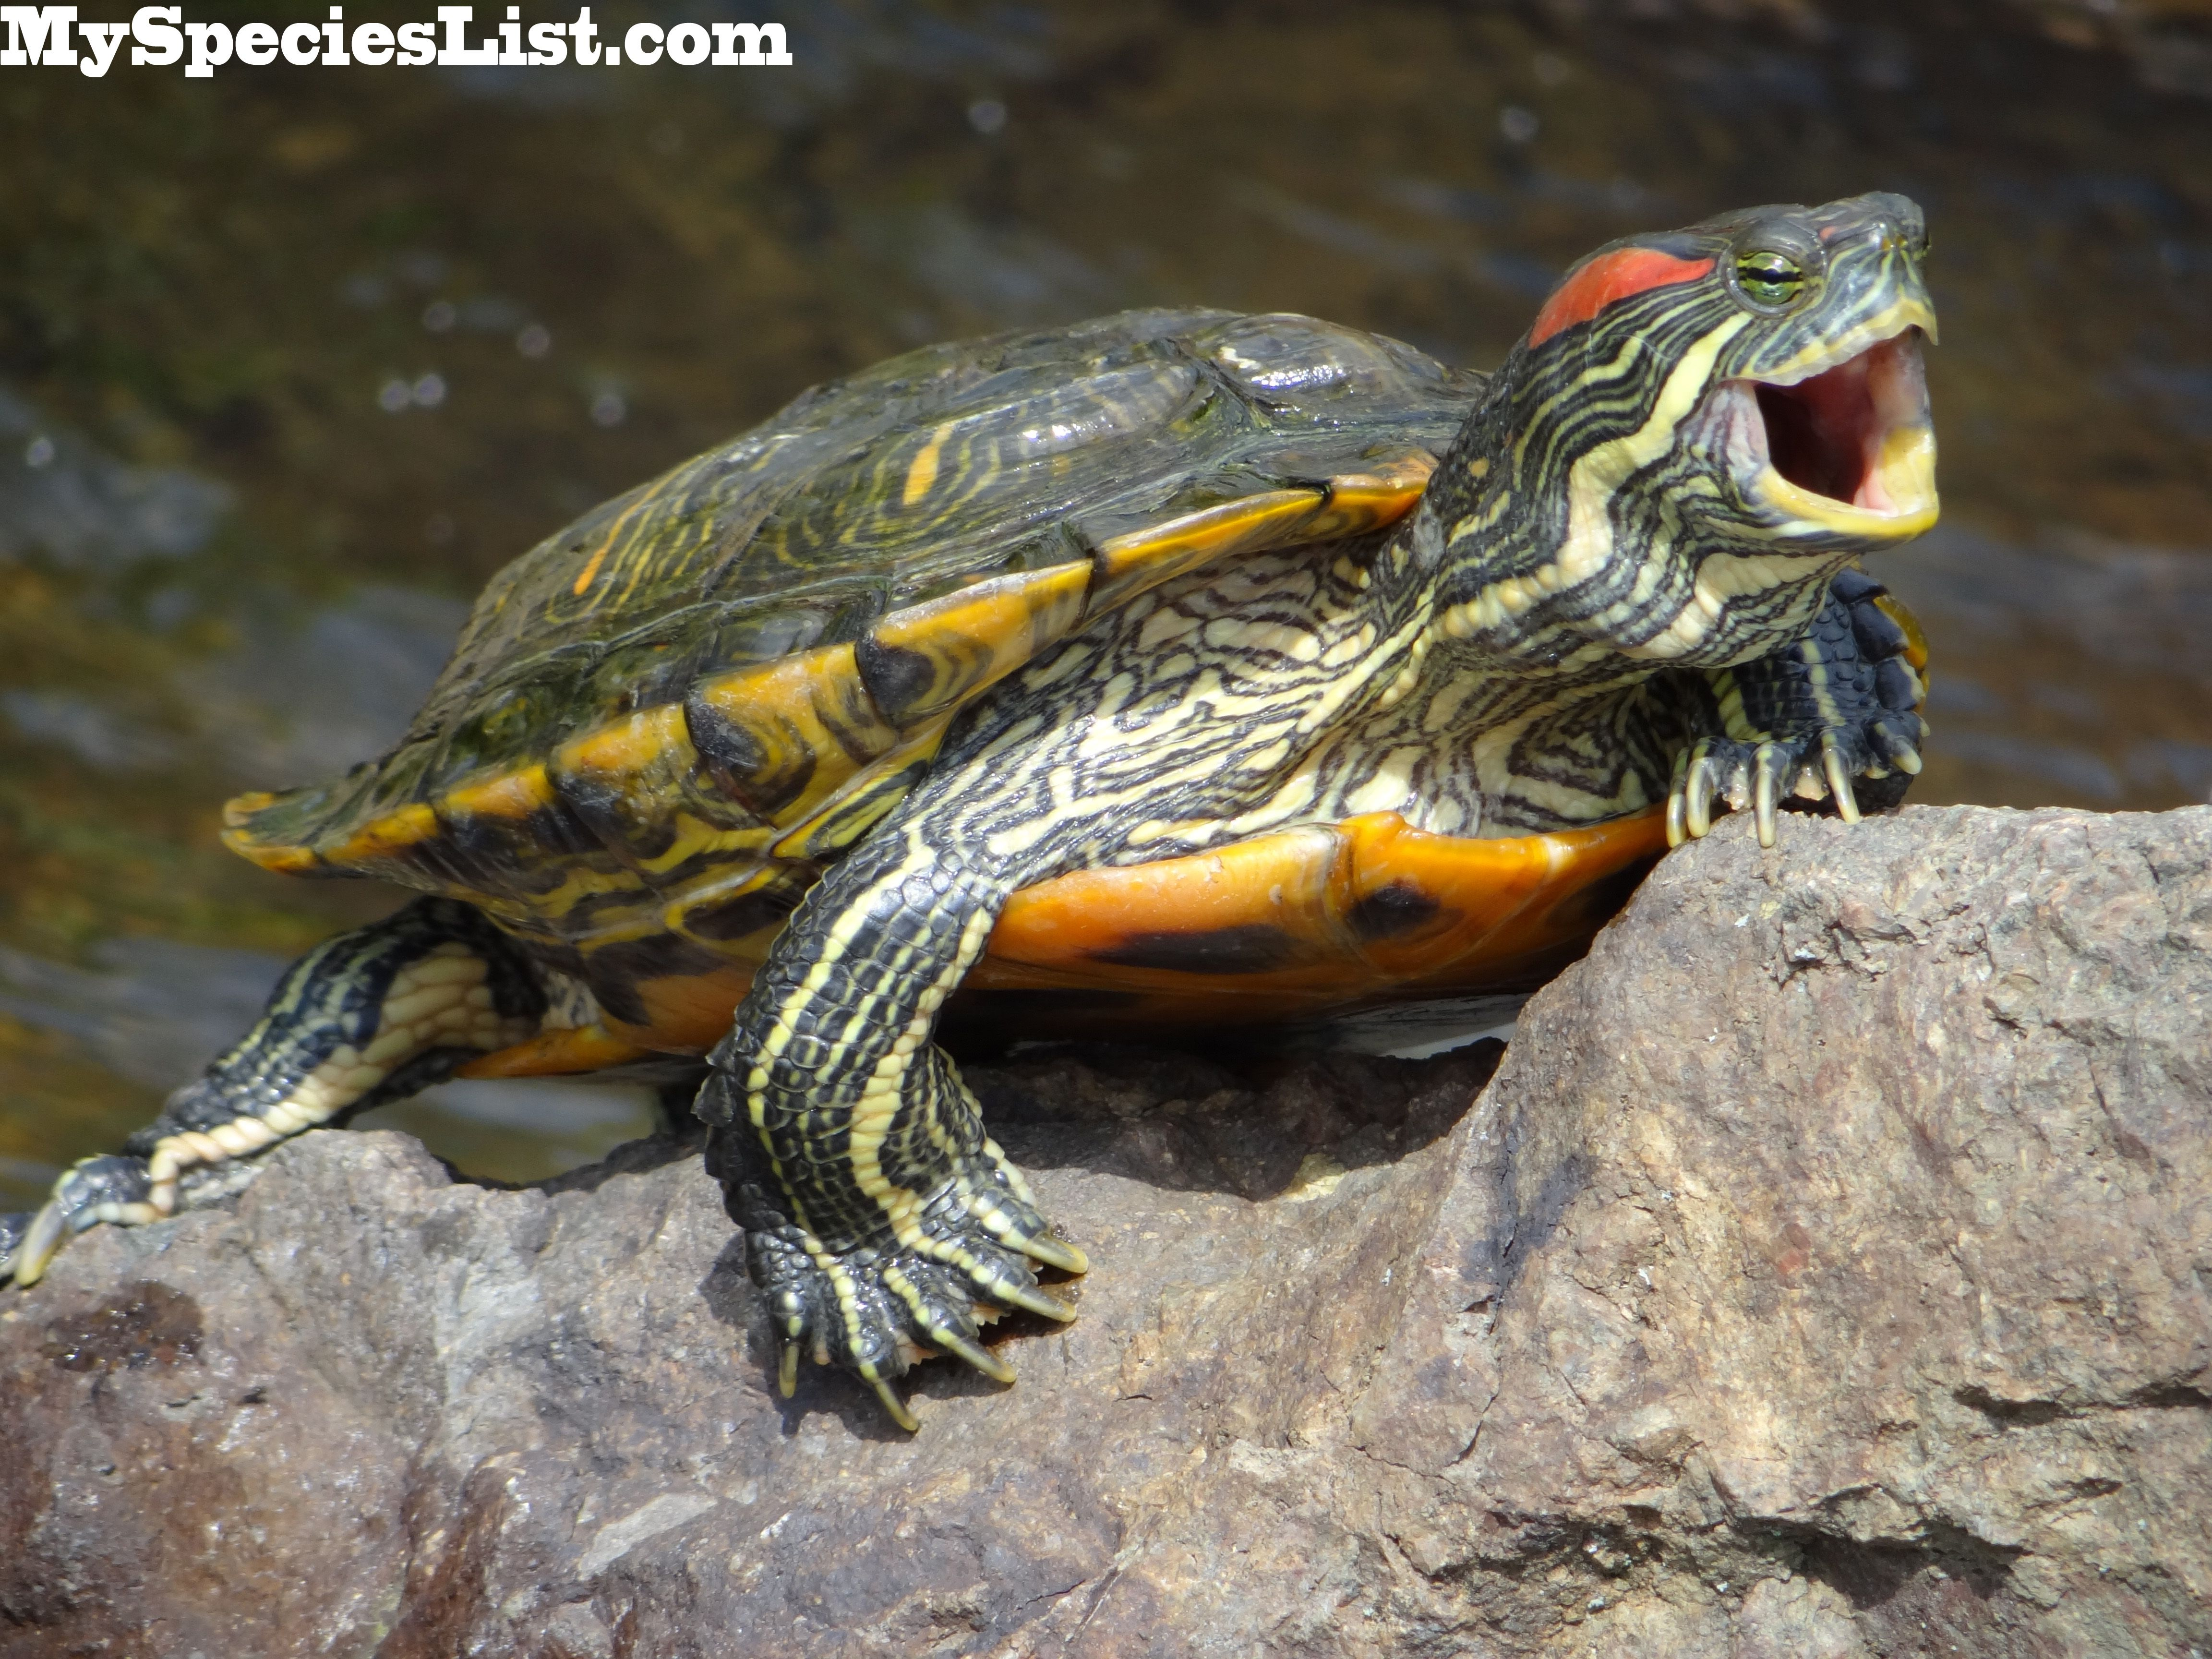 Pin by Leah Pellegrin on chinese food | Pet turtle, Slider